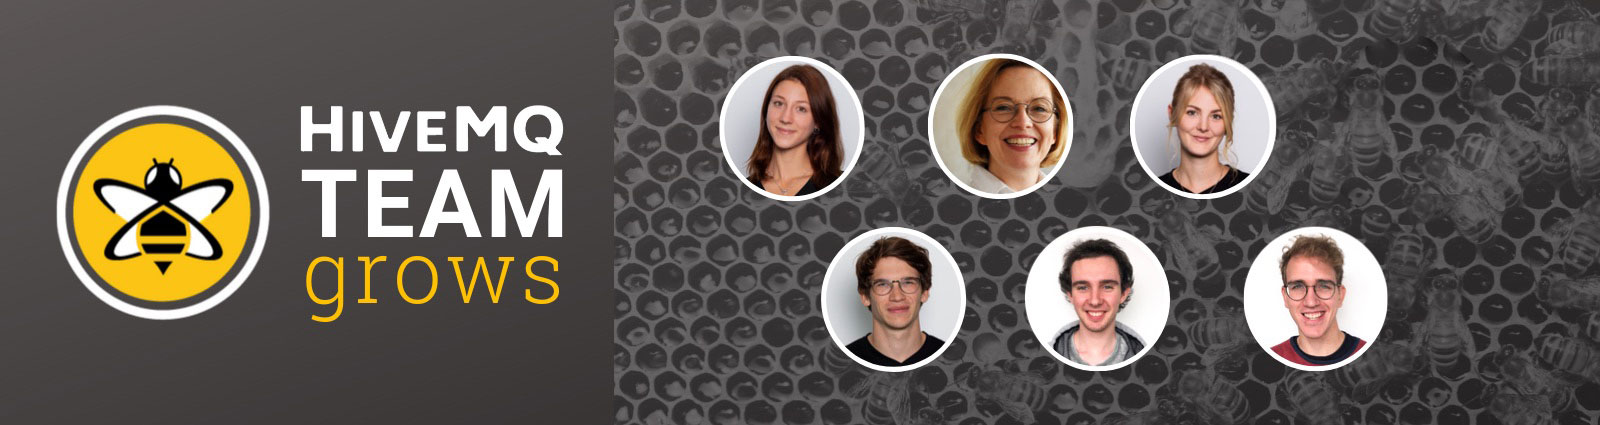 The HiveMQ Team Is Growing